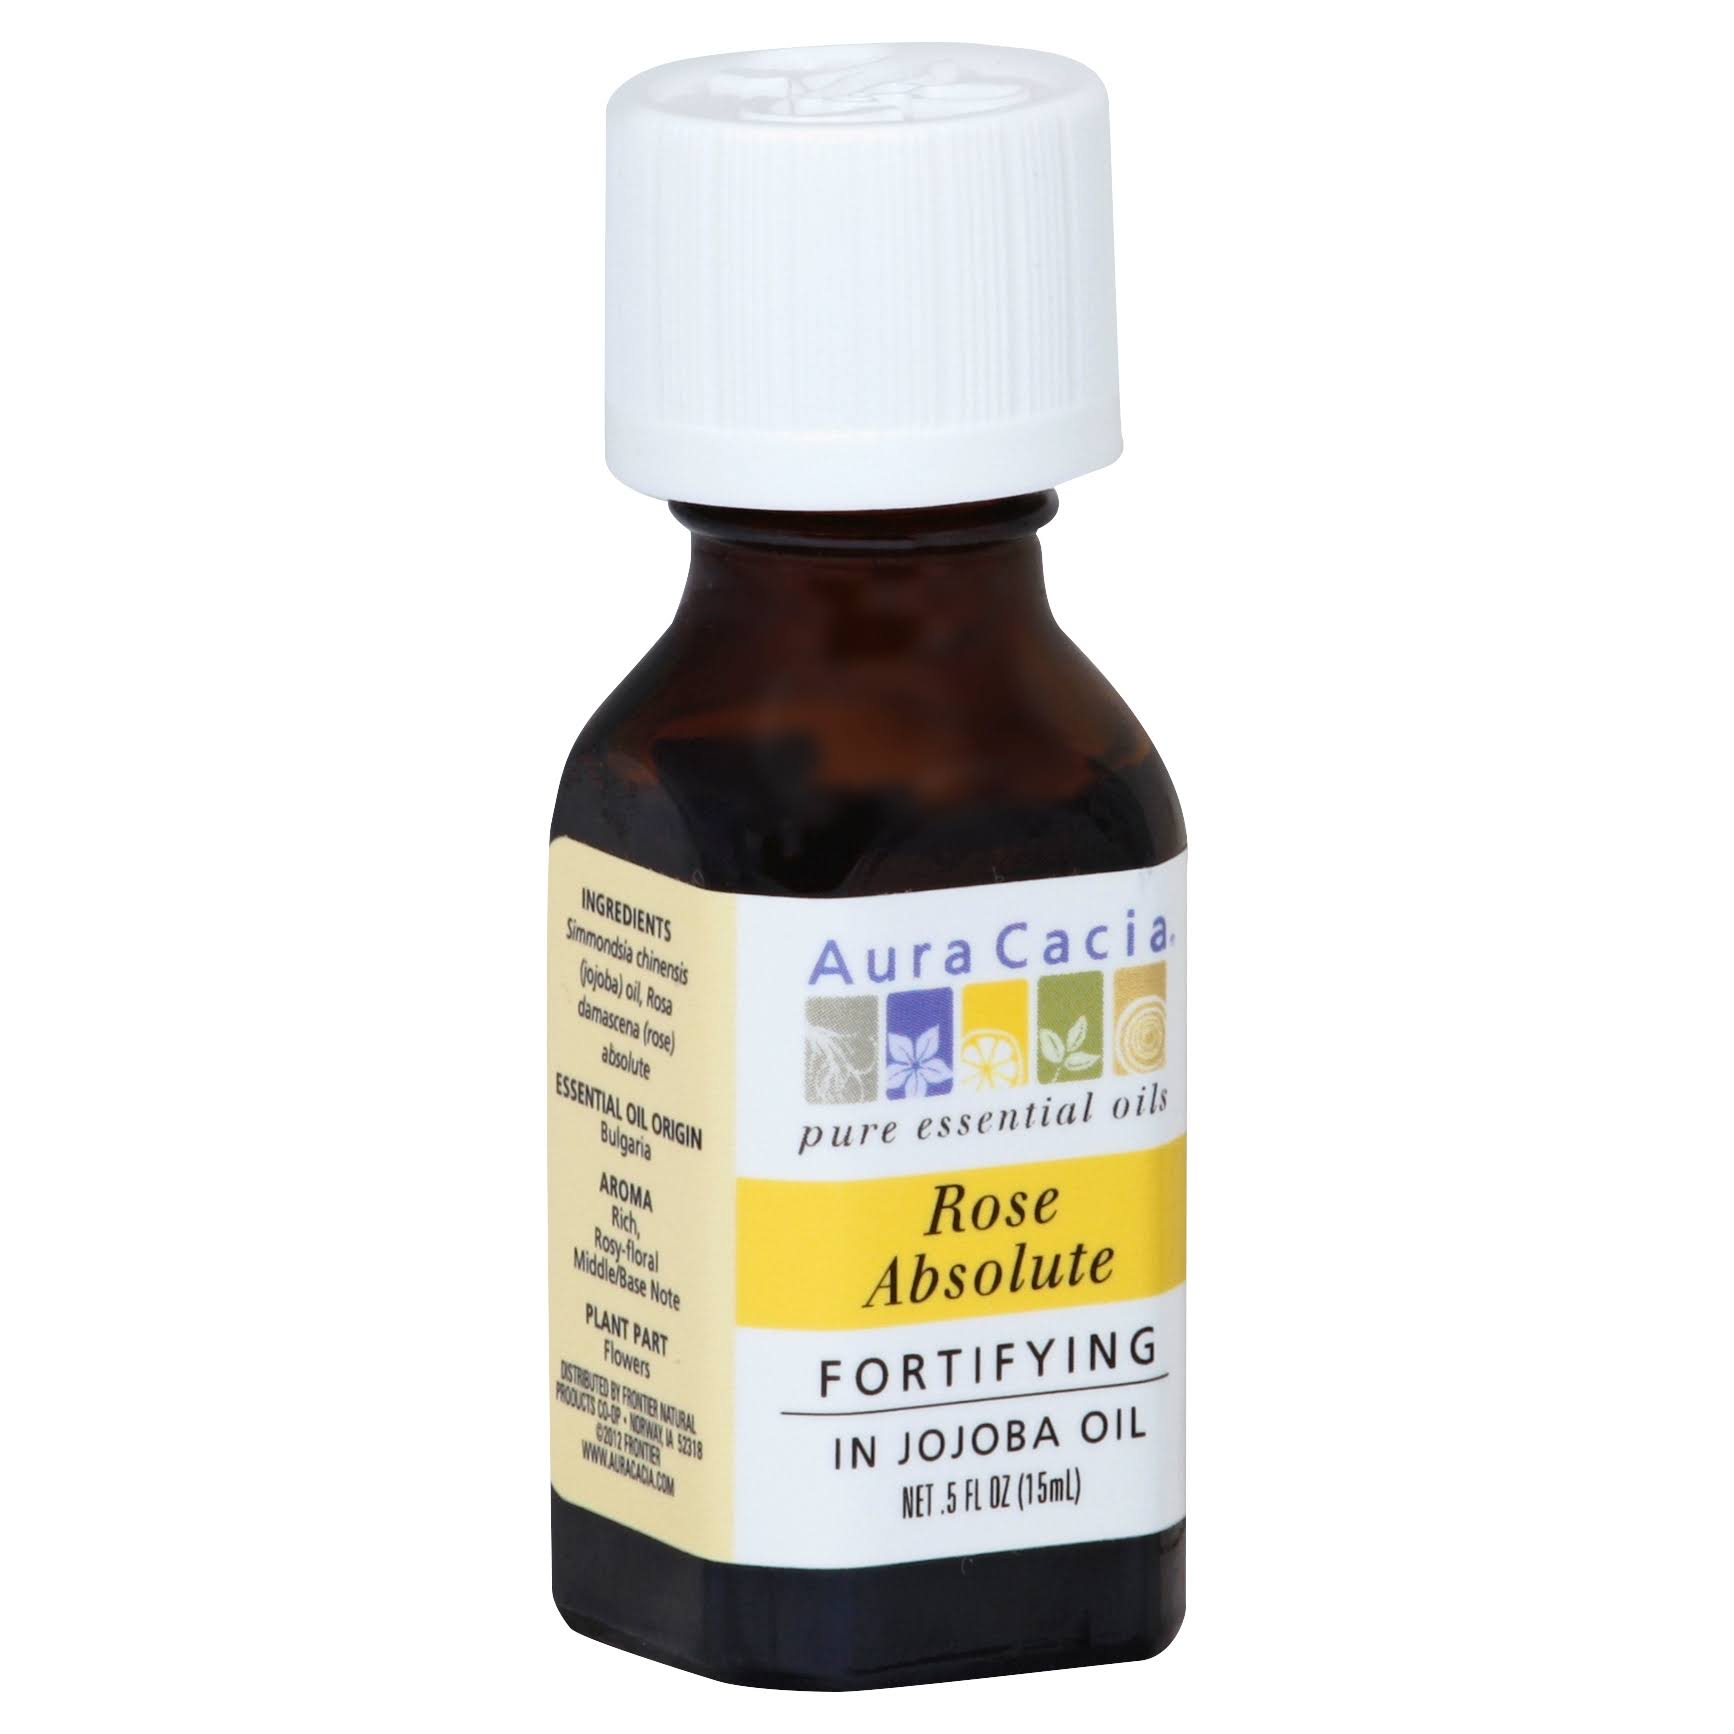 Aura Cacia Pure Aromatherapy 100% Pure Essential Oil - Rose Absolute, .5oz